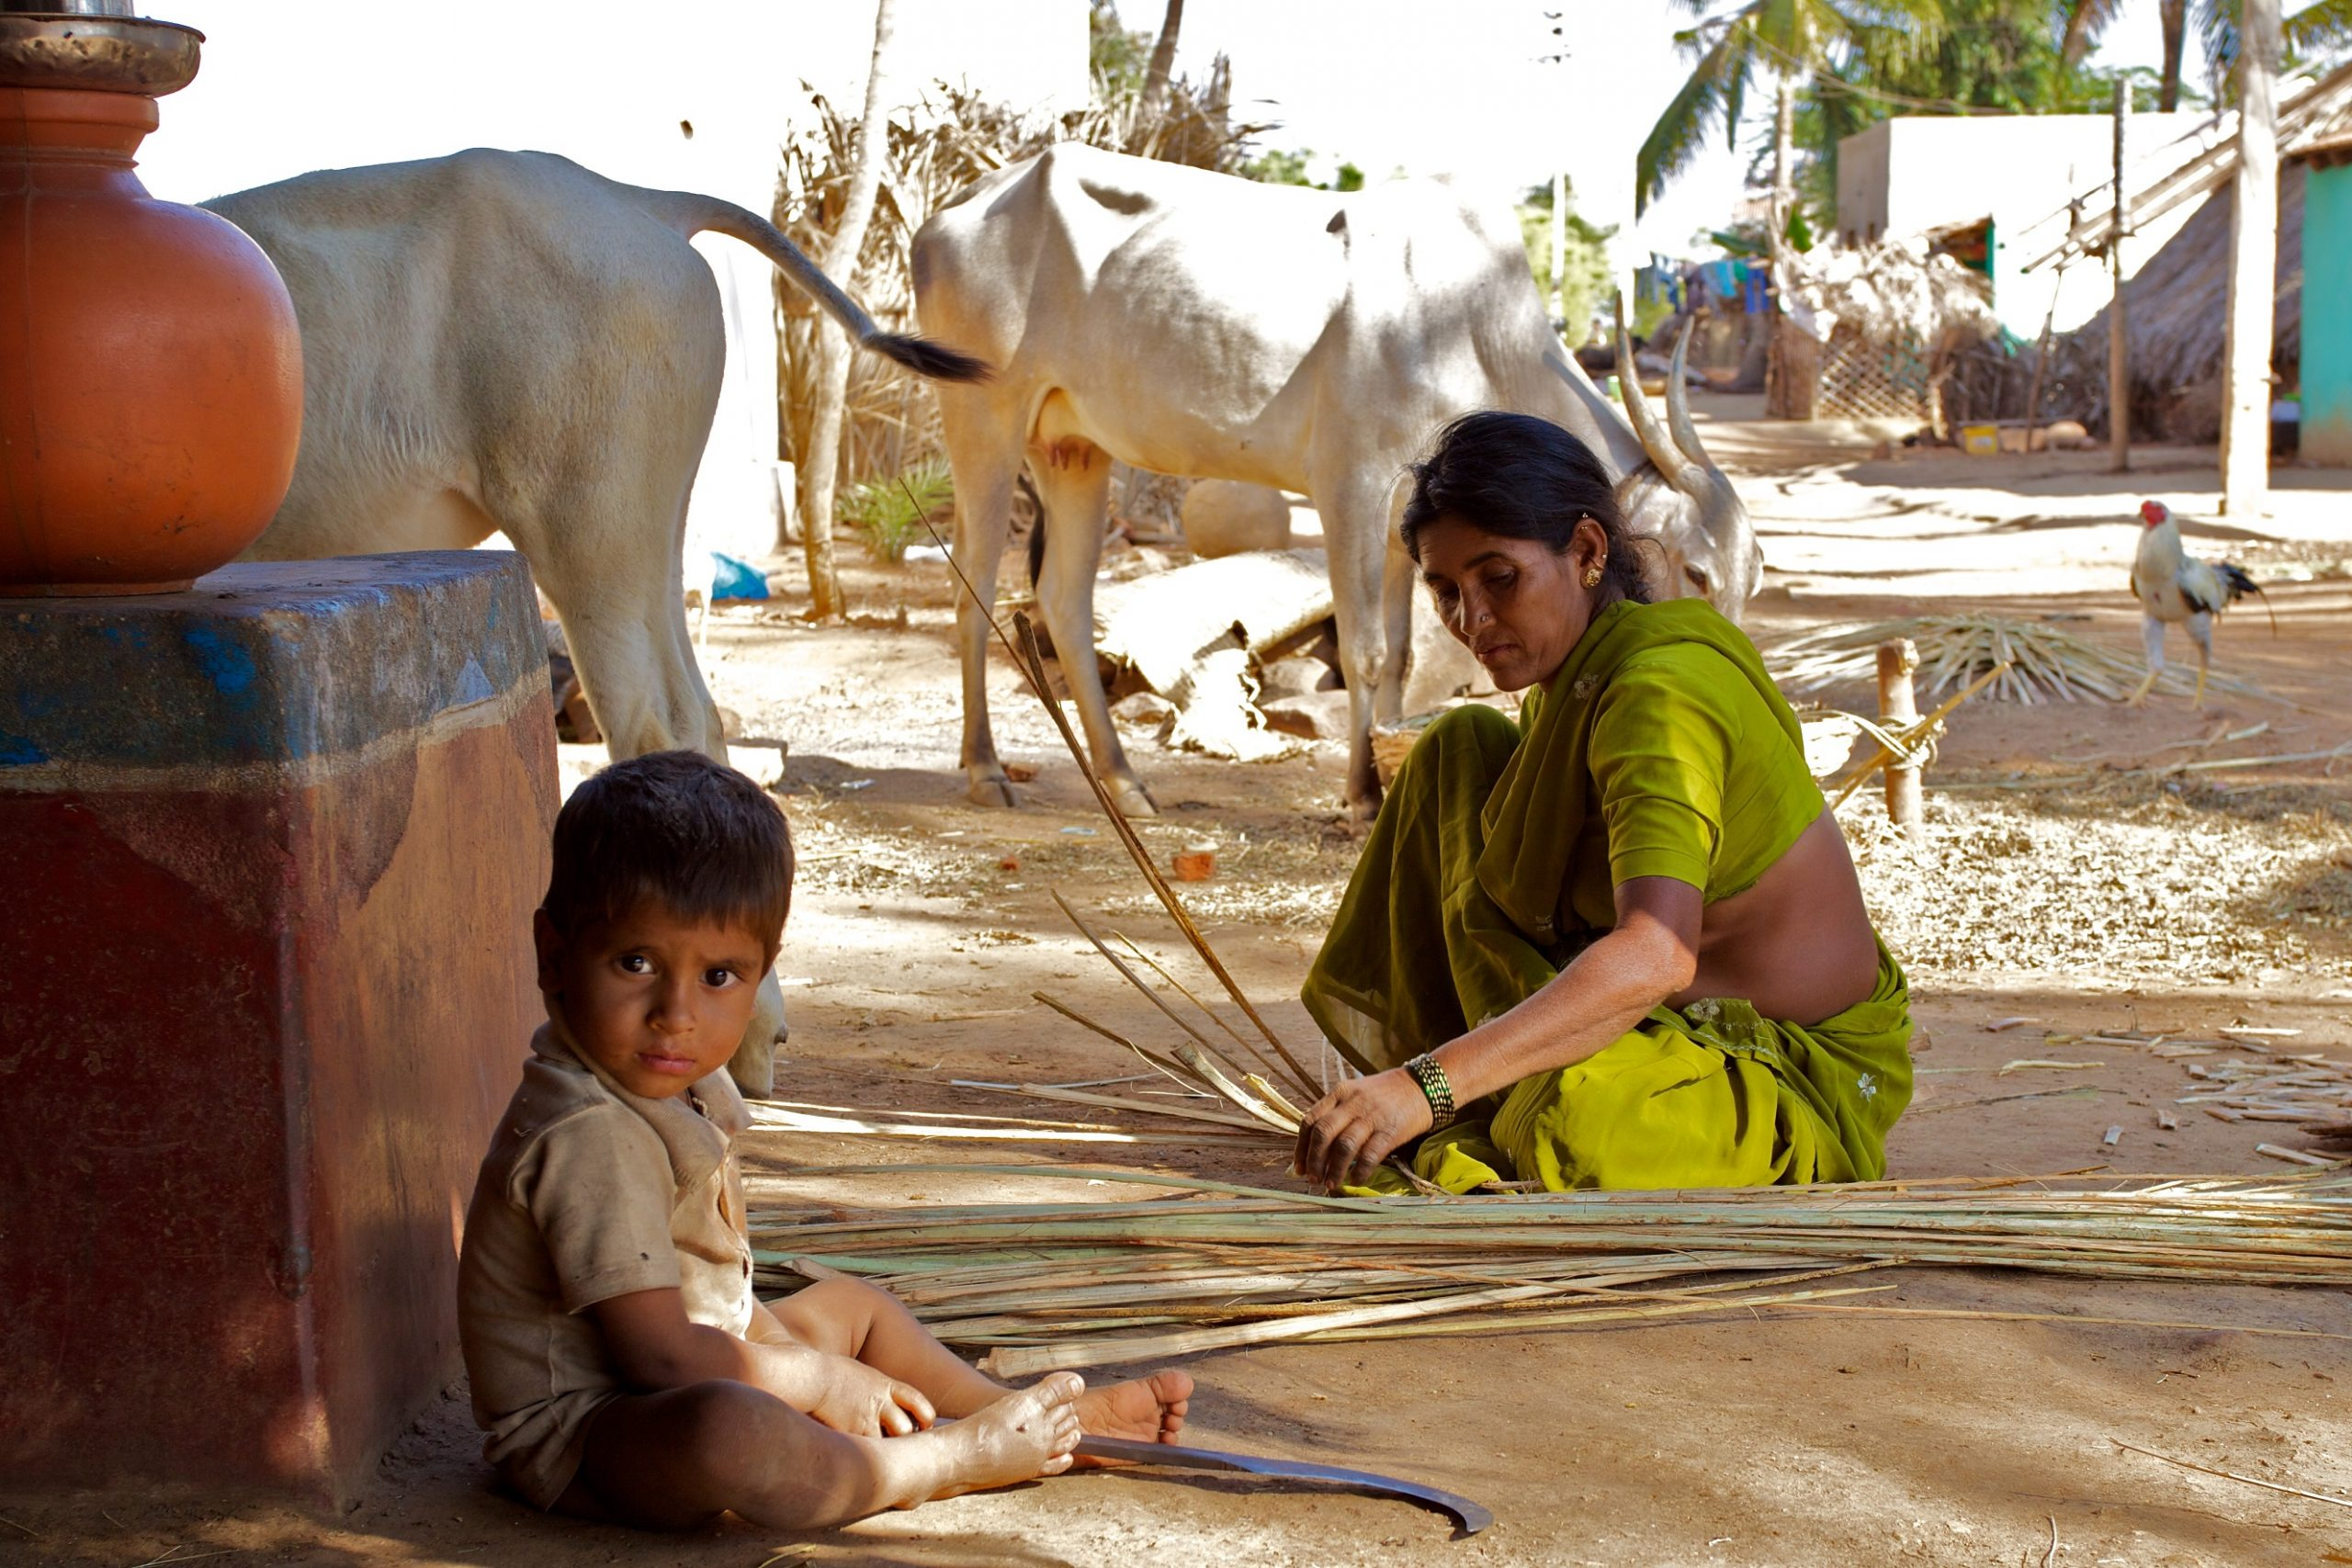 gender inequality_an Indian woman weaving a basket next to her baby